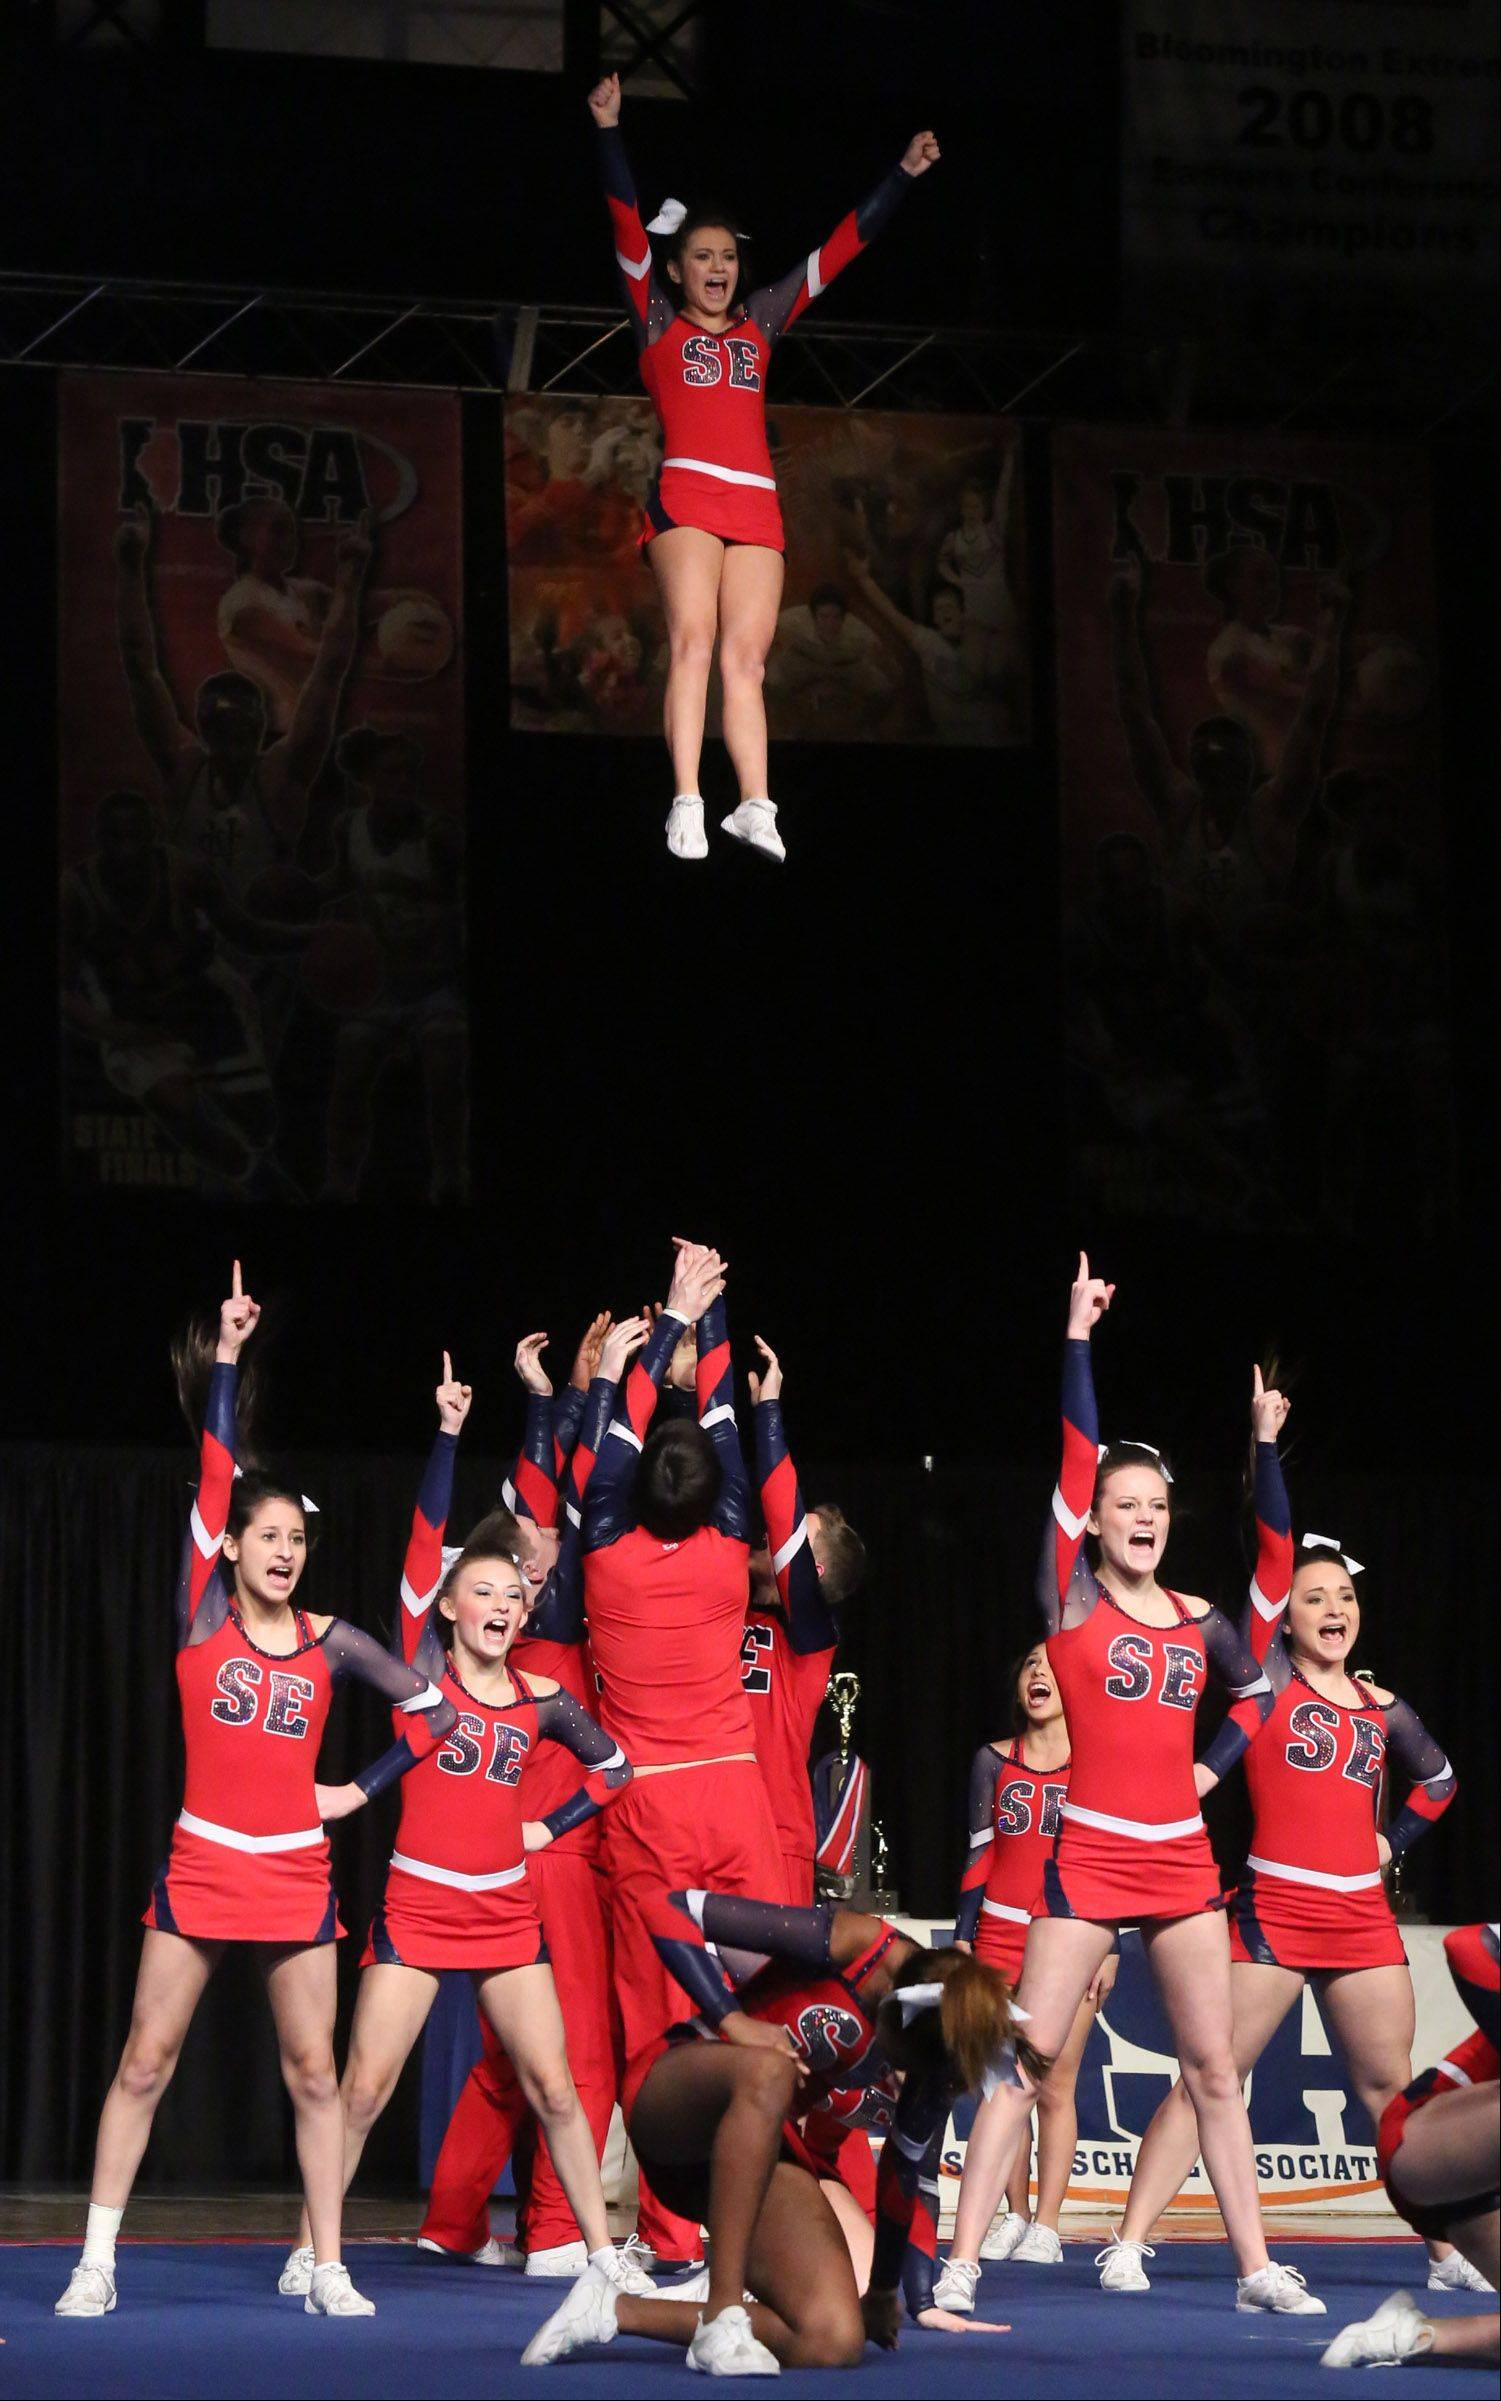 South Elgin High School's cheer team performs in the coed team category.